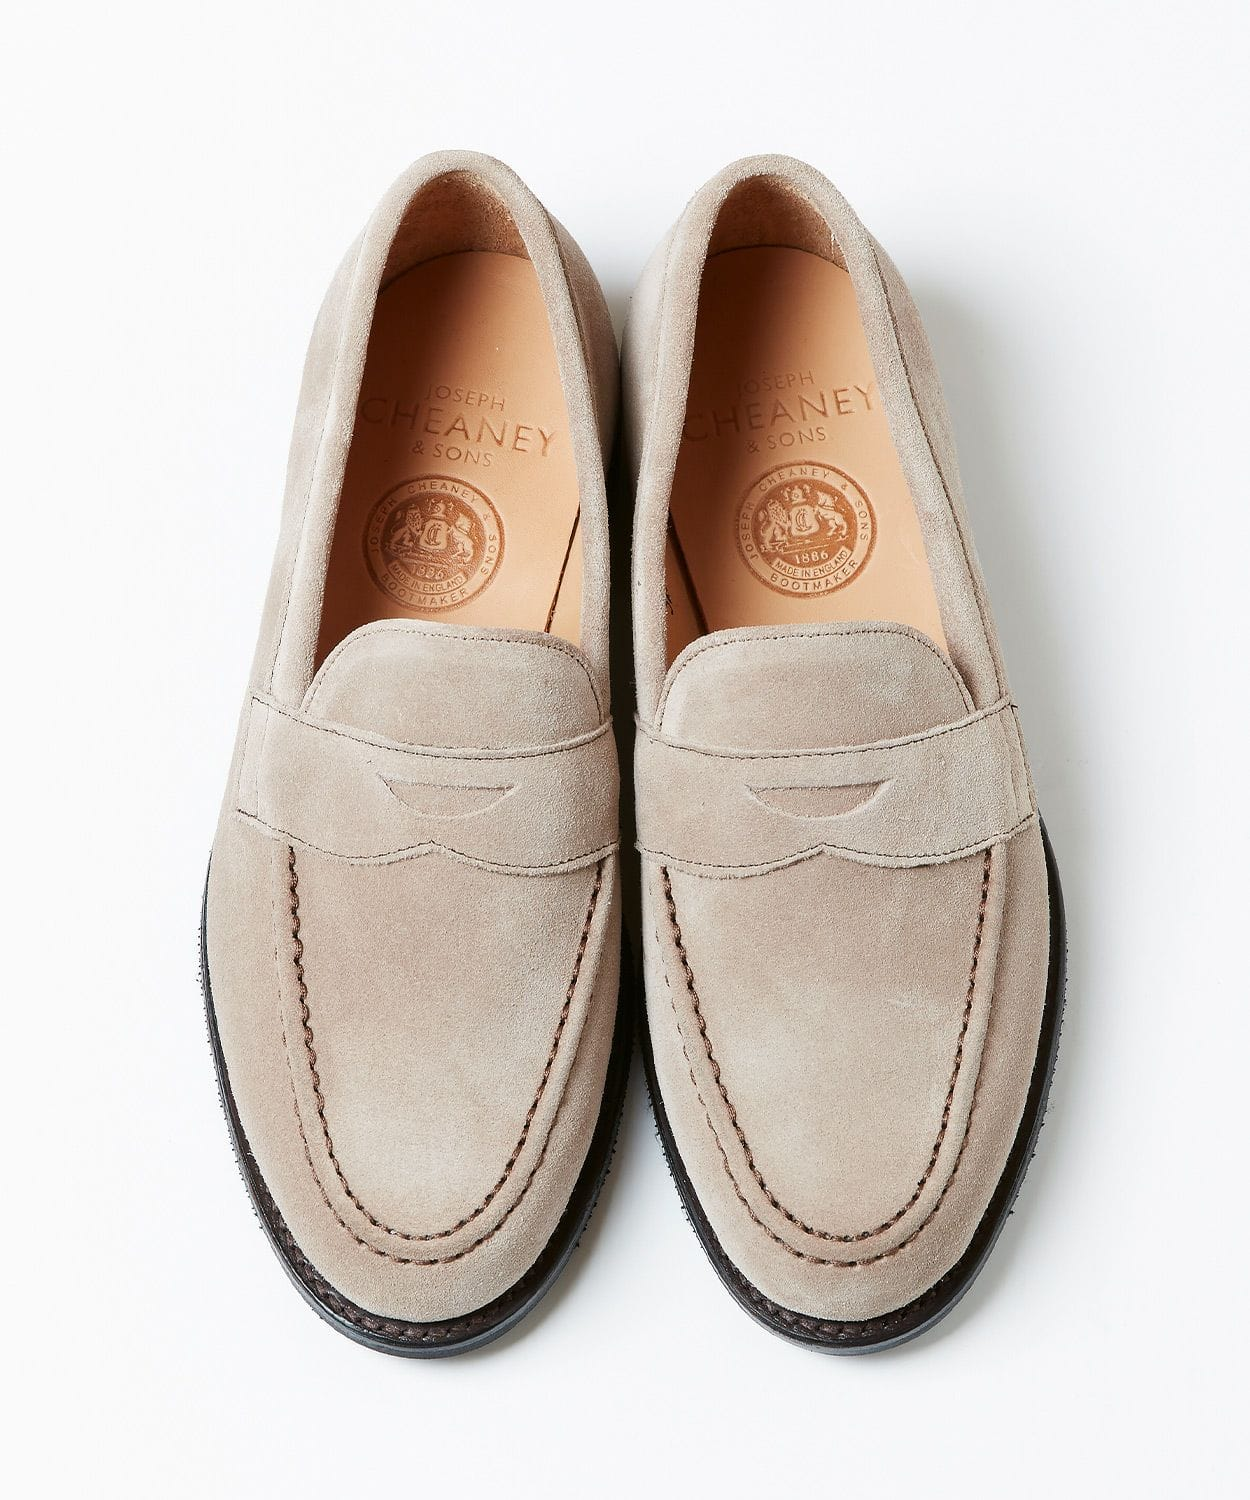 The last 5203 for exclusive use of JOSEPH CHEANEY men 2020SS loafers